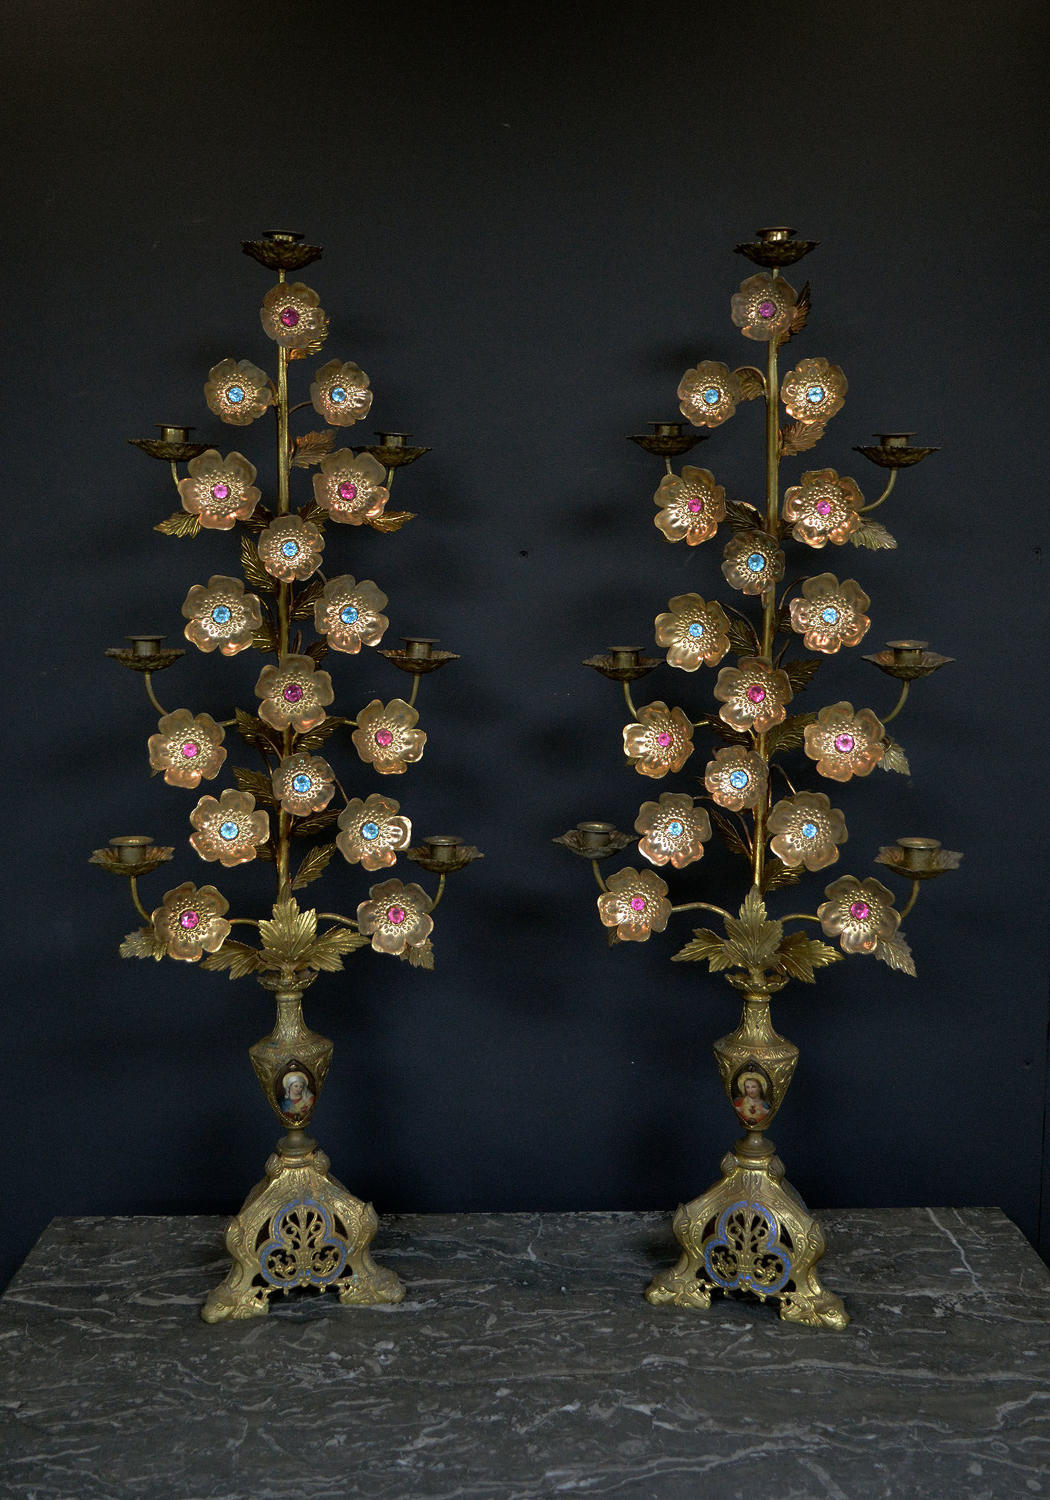 Large Pair of 19th Century Ecclesiastical Gilt Bronze Candlesticks